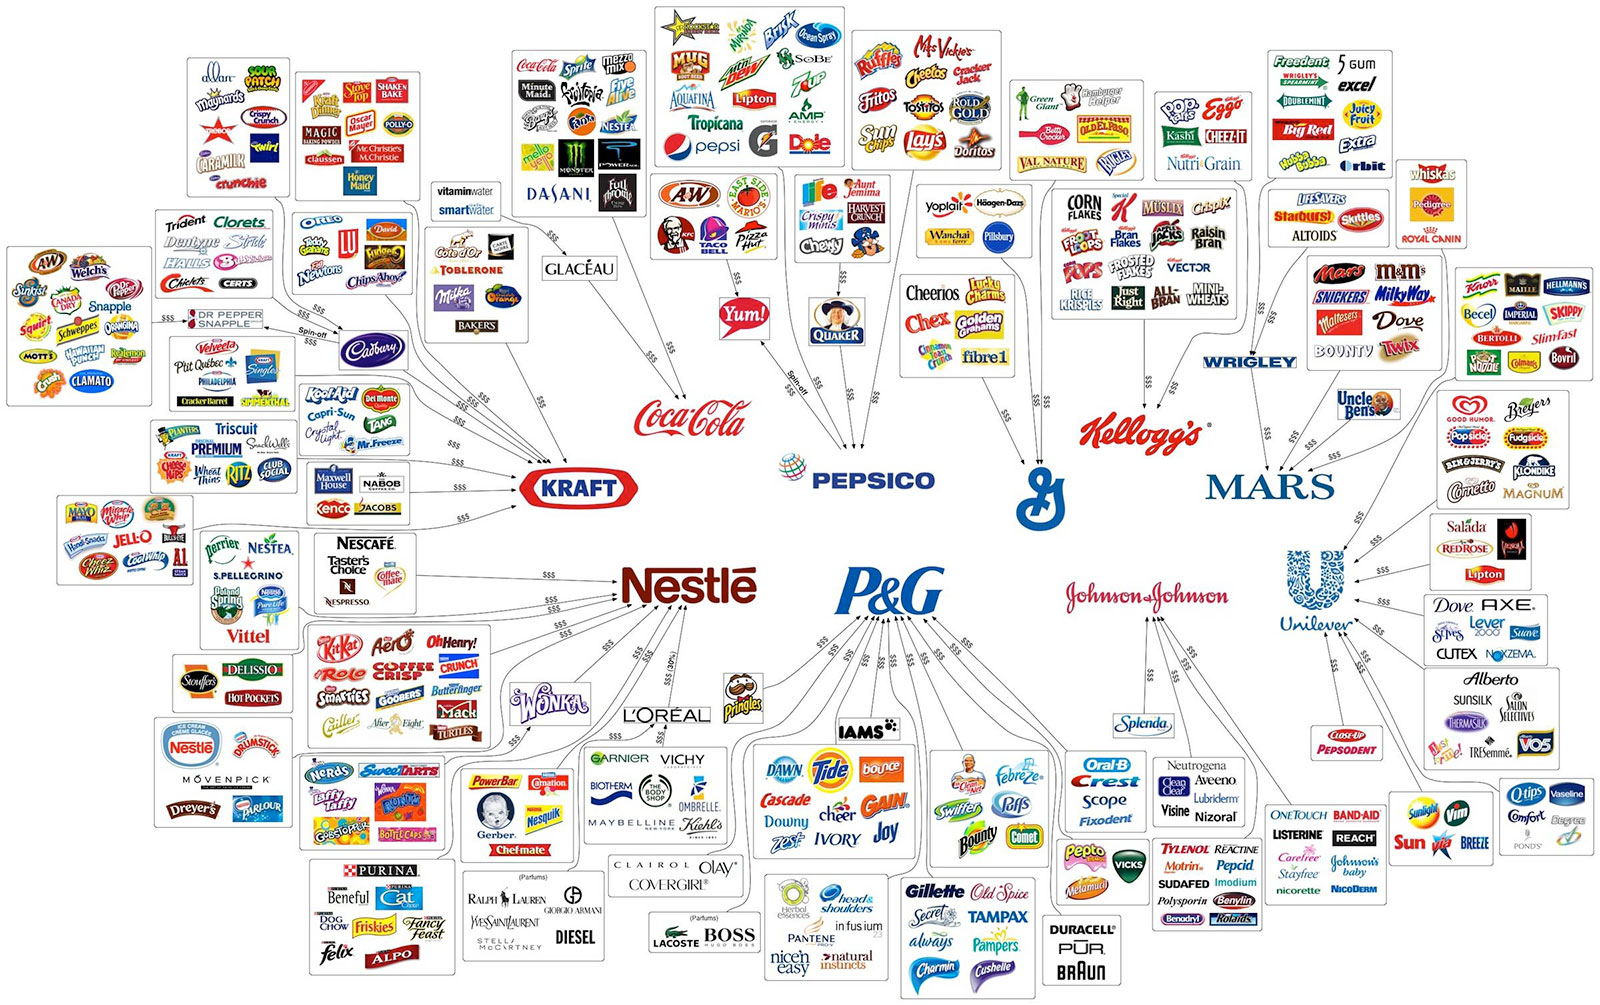 Food brand ownership